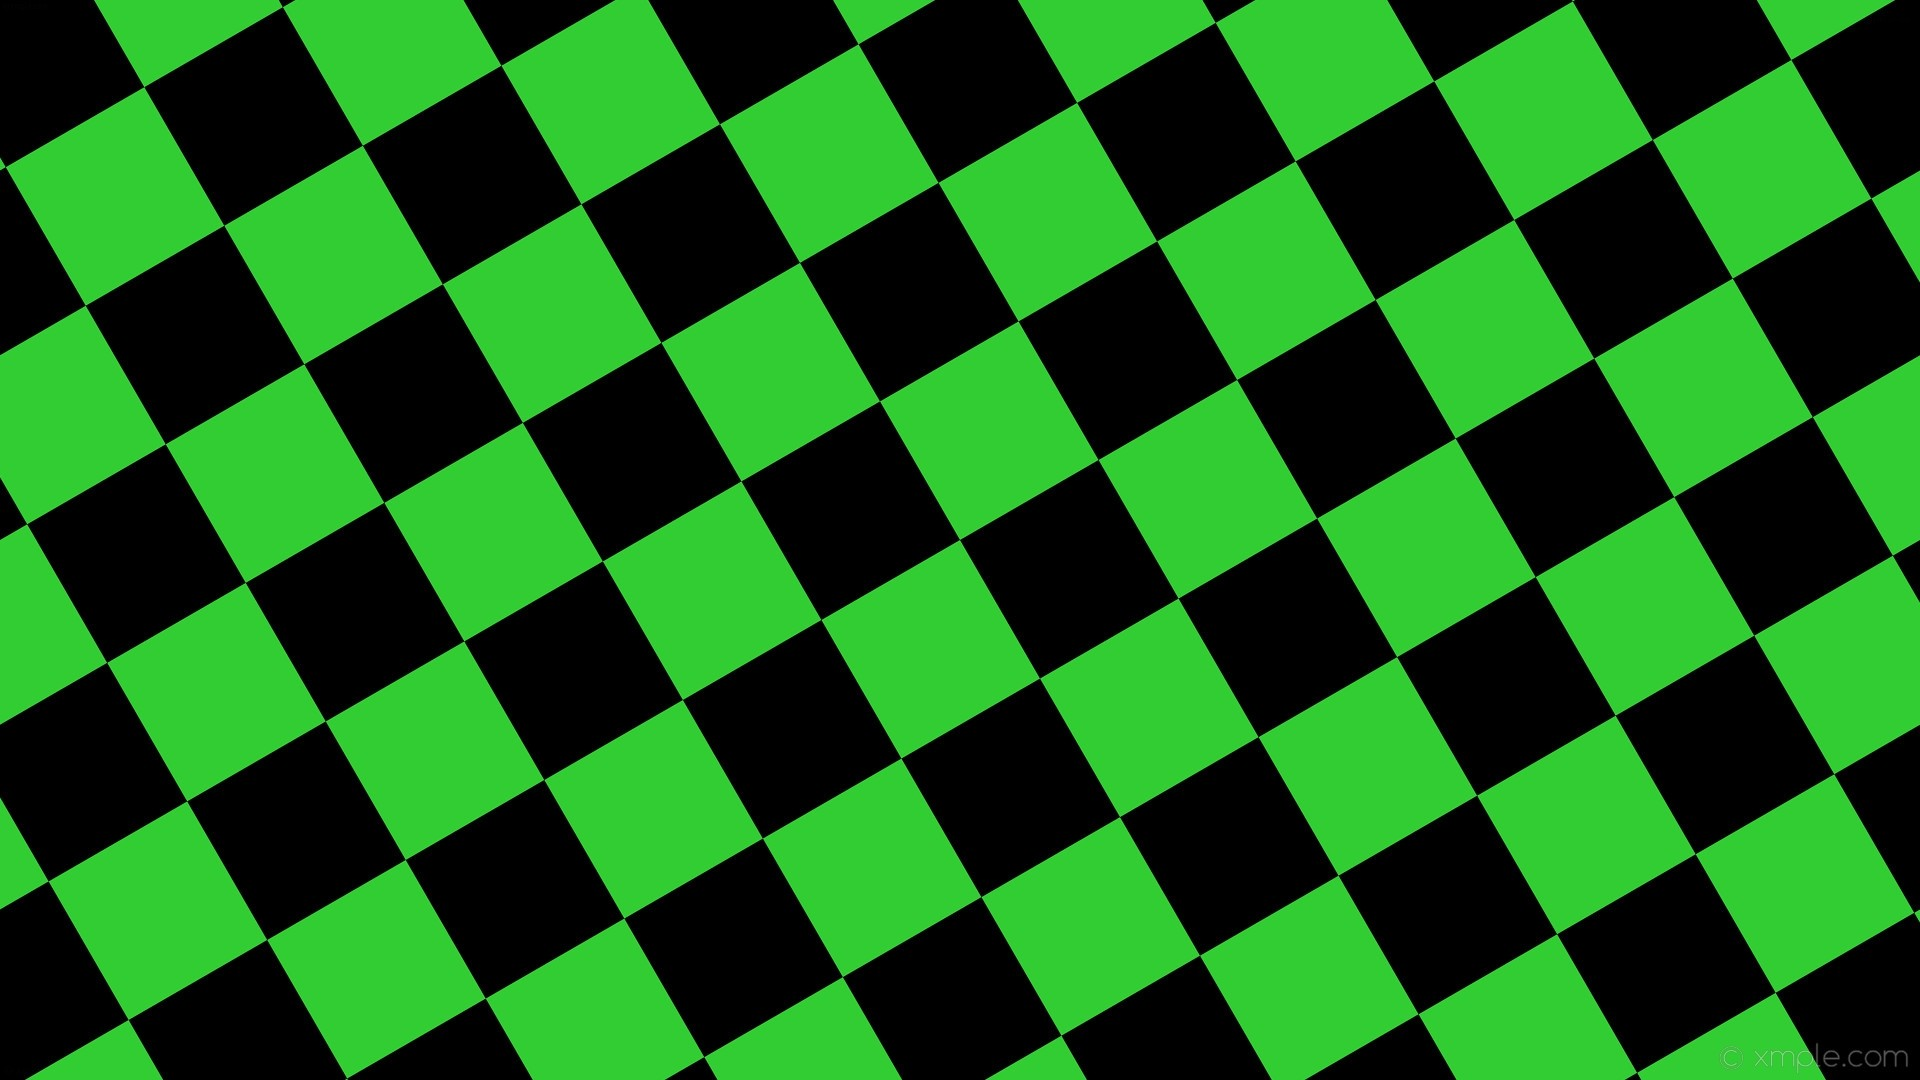 Checkered Wallpaper image hd